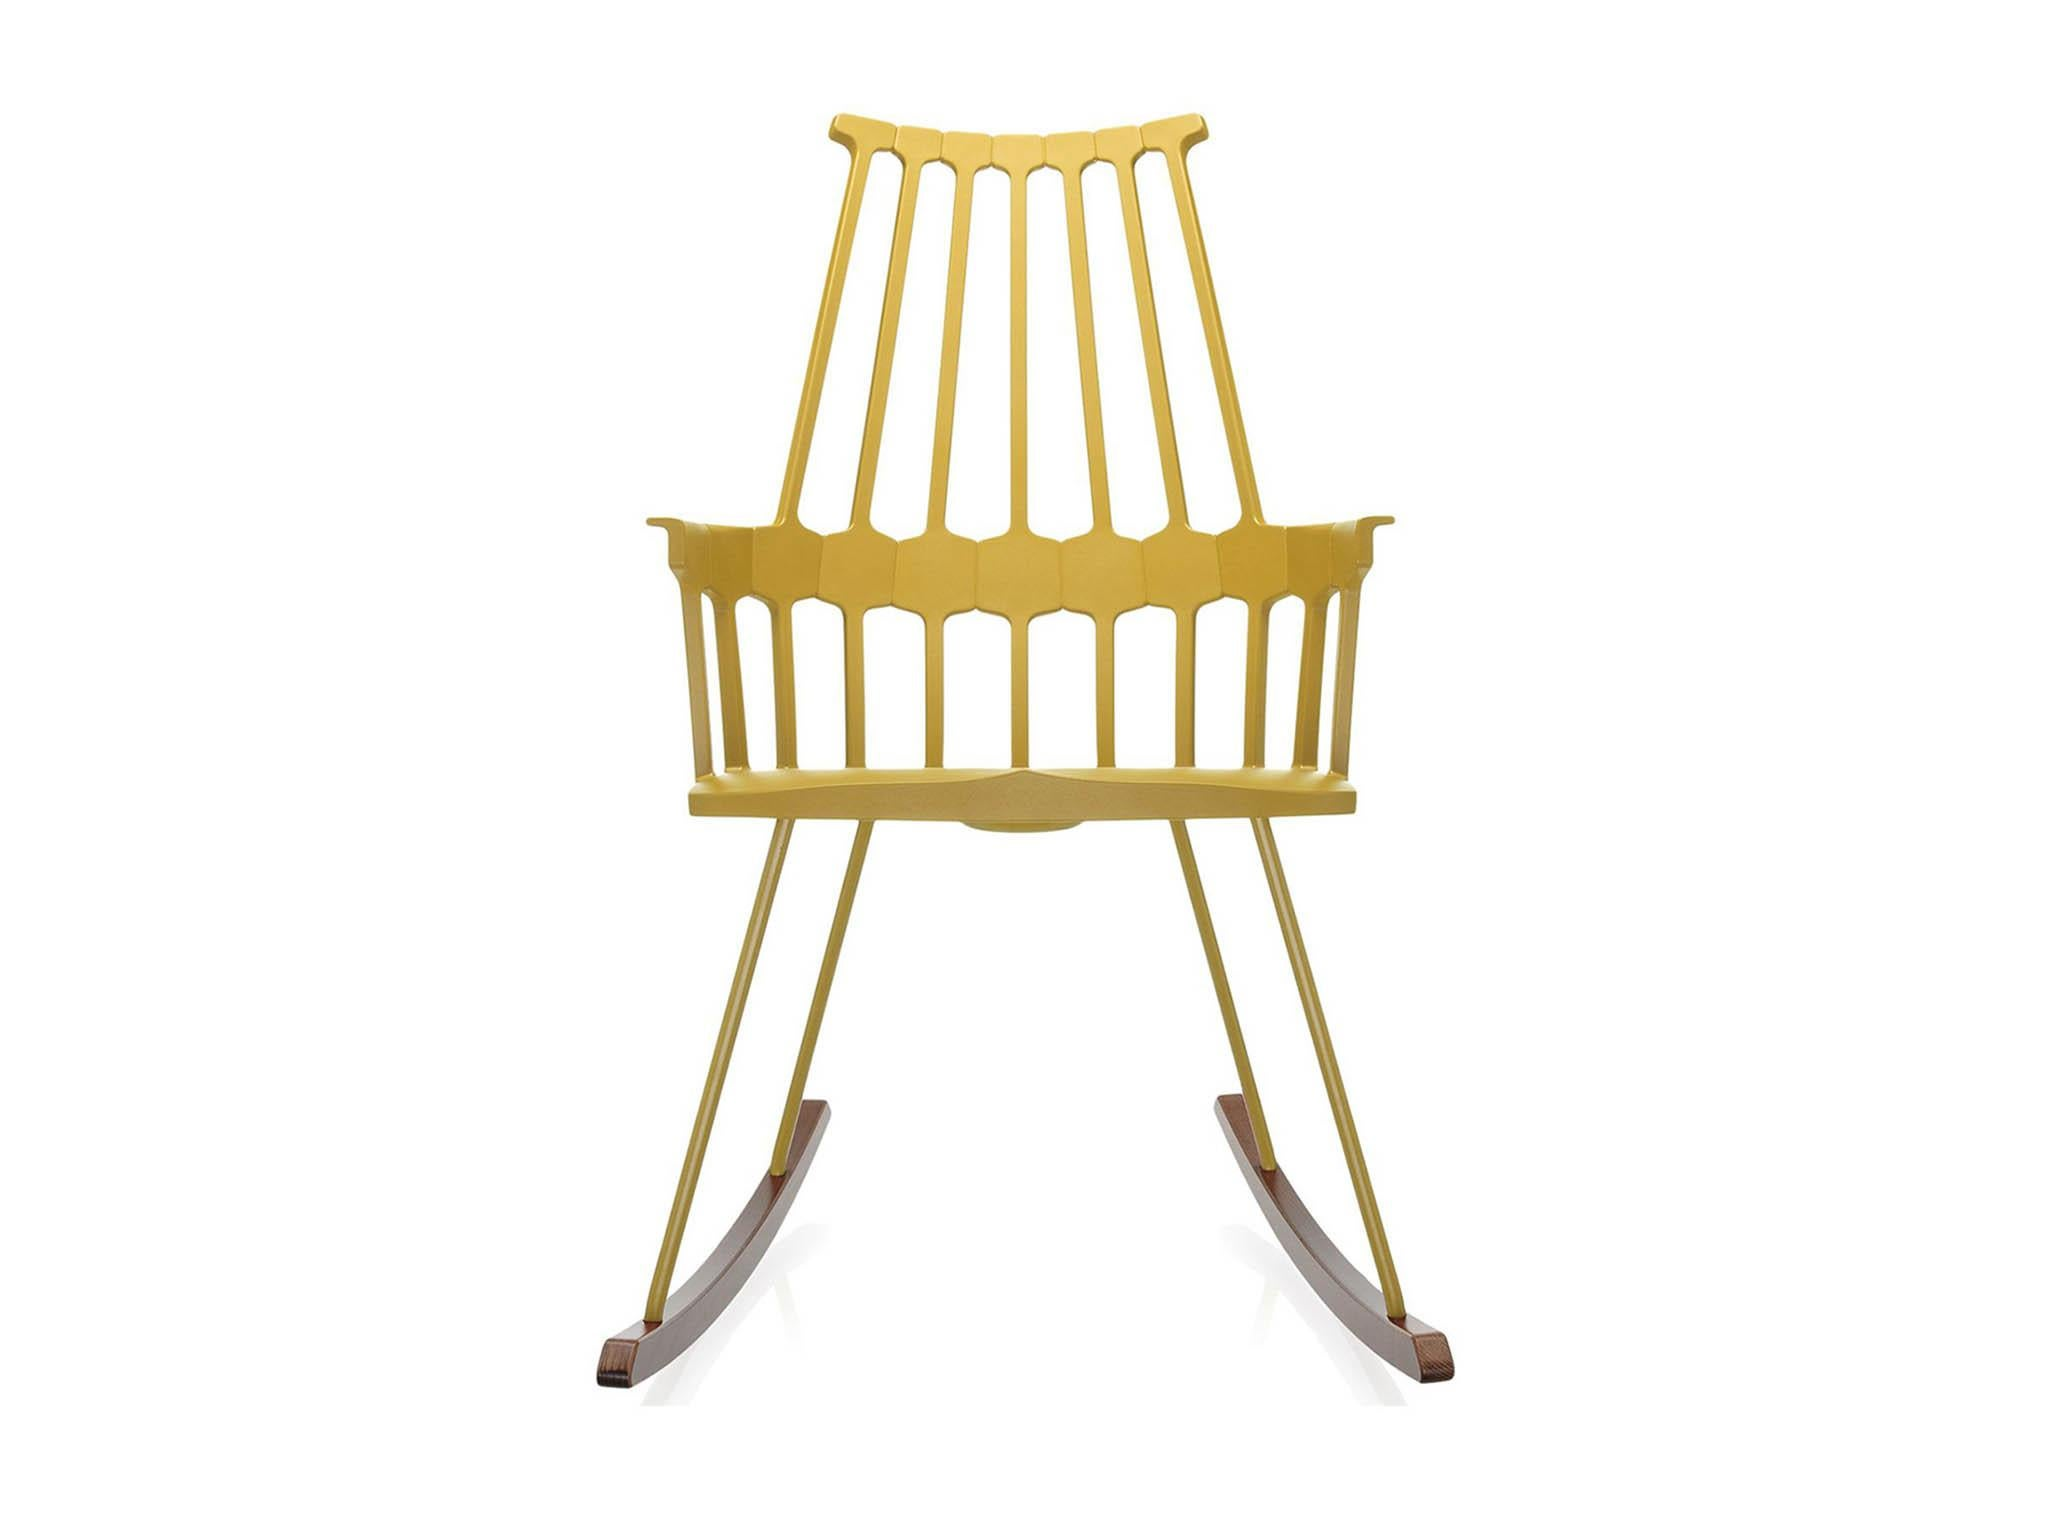 Phenomenal 10 Best Rocking Chairs The Independent Cjindustries Chair Design For Home Cjindustriesco